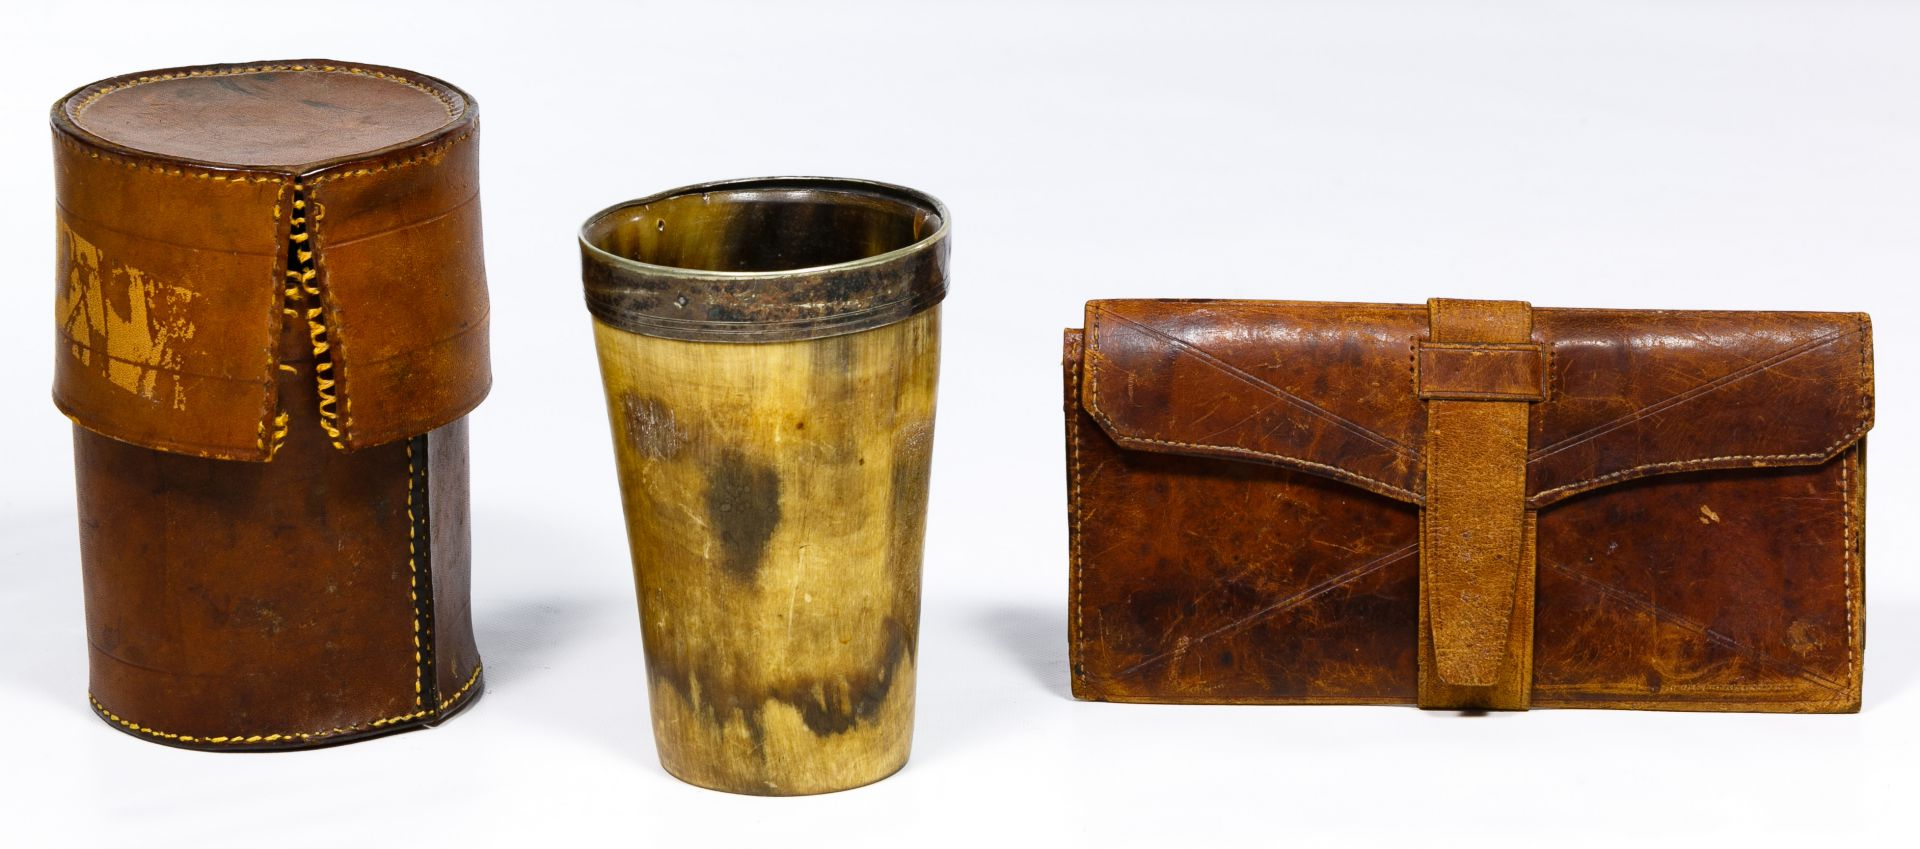 098be04d87 Lot 309: Civil War Era Drinking Cup with Leather Storage Case and ...